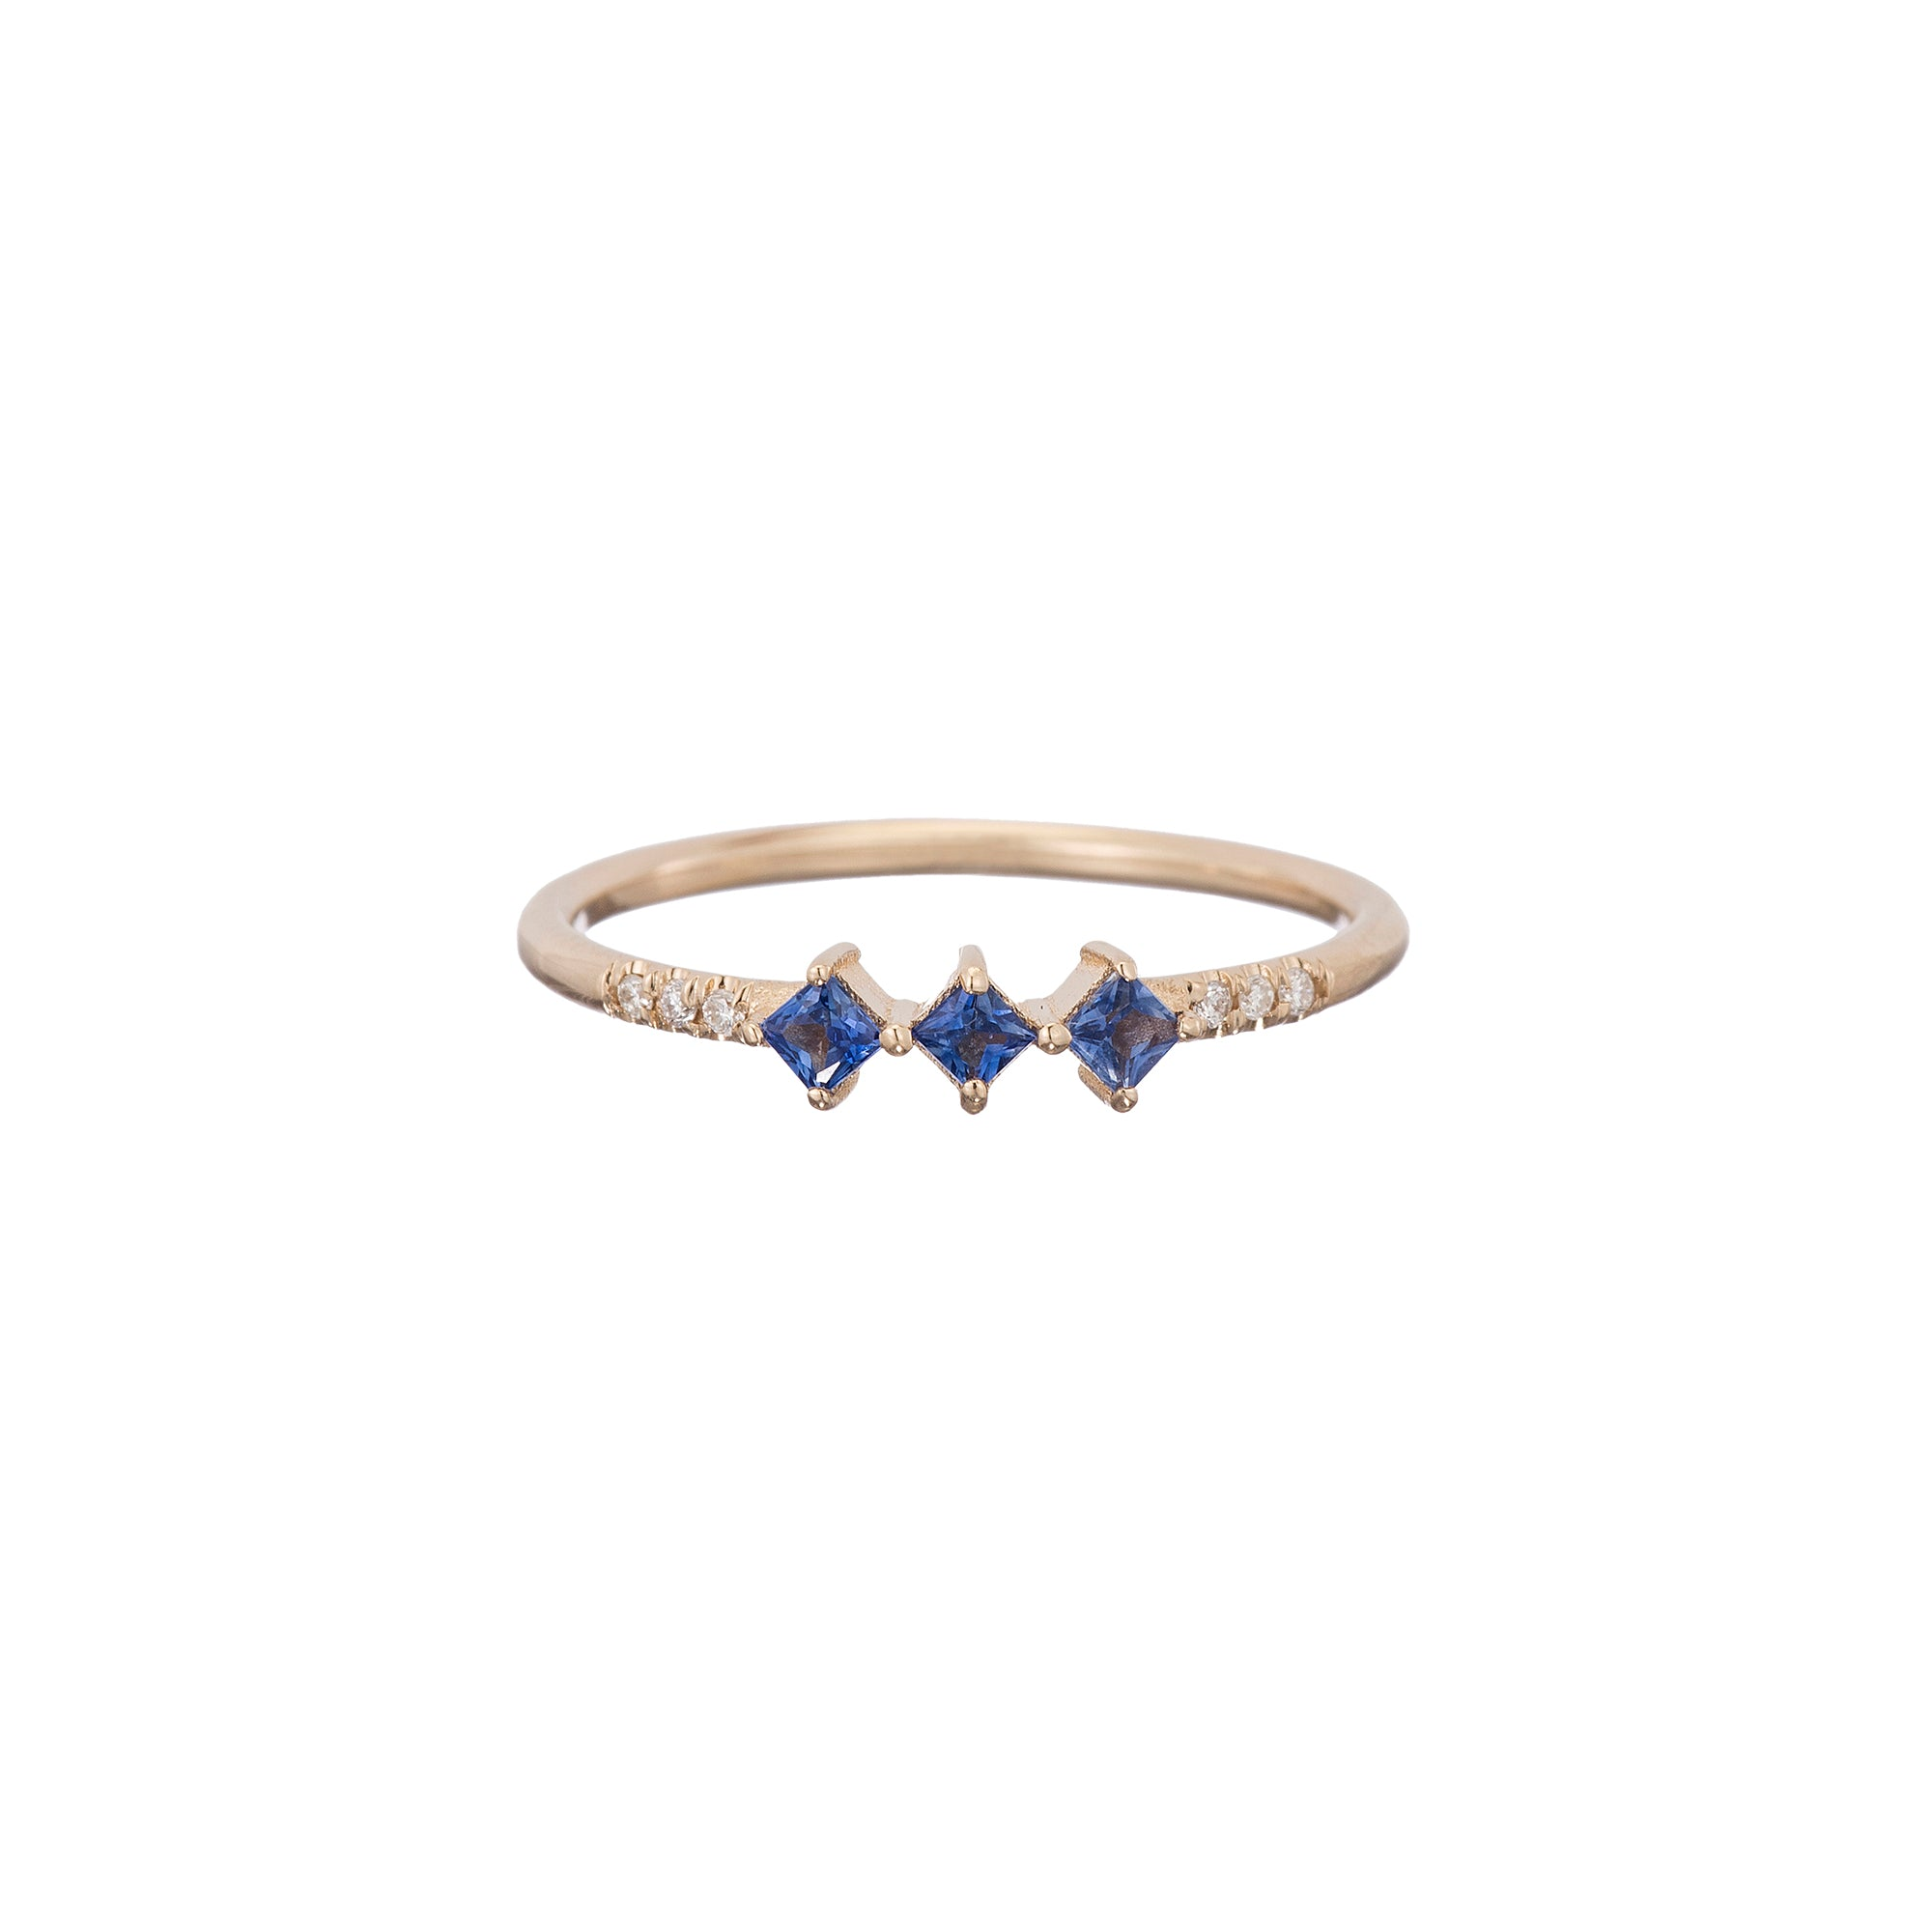 Gold White Diamond & Sapphire Harmony Ring by Jennie Kwon for Broken English Jewelry